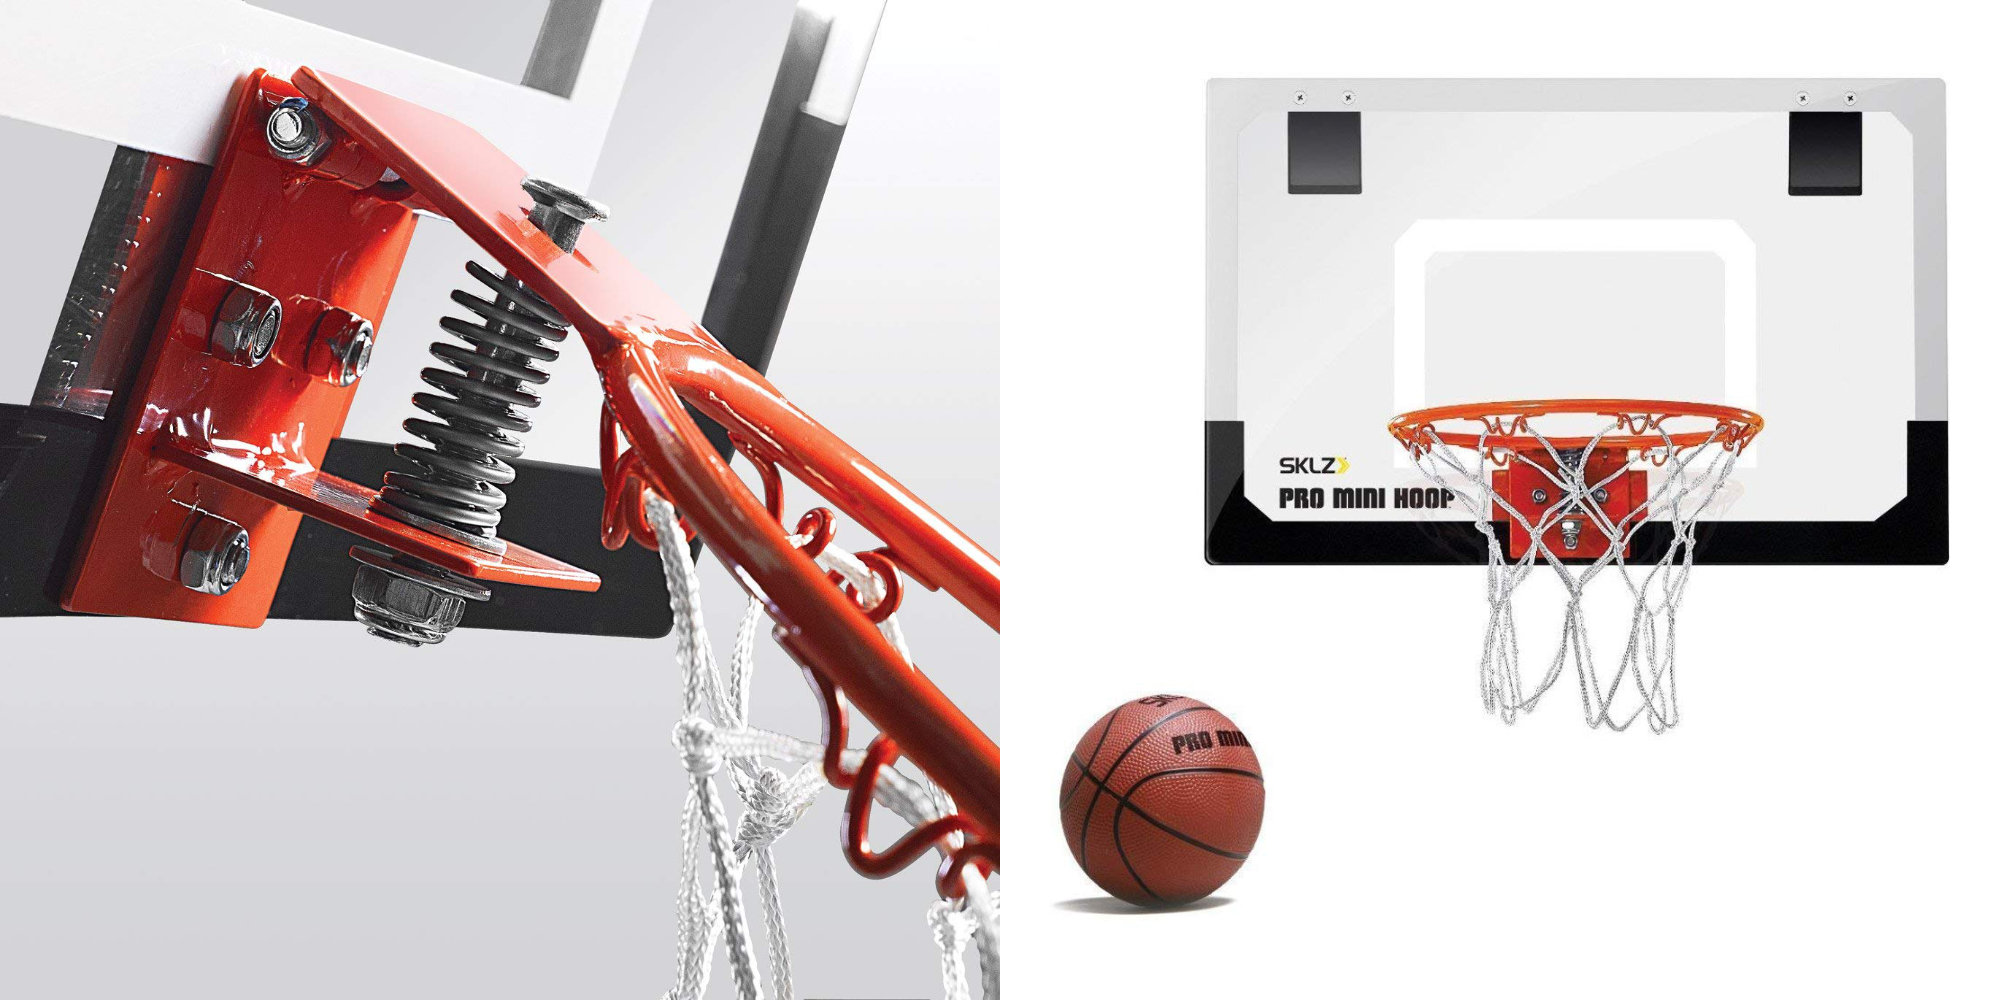 Show Off Your Sklz W The Pro Mini Basketball Hoop For An